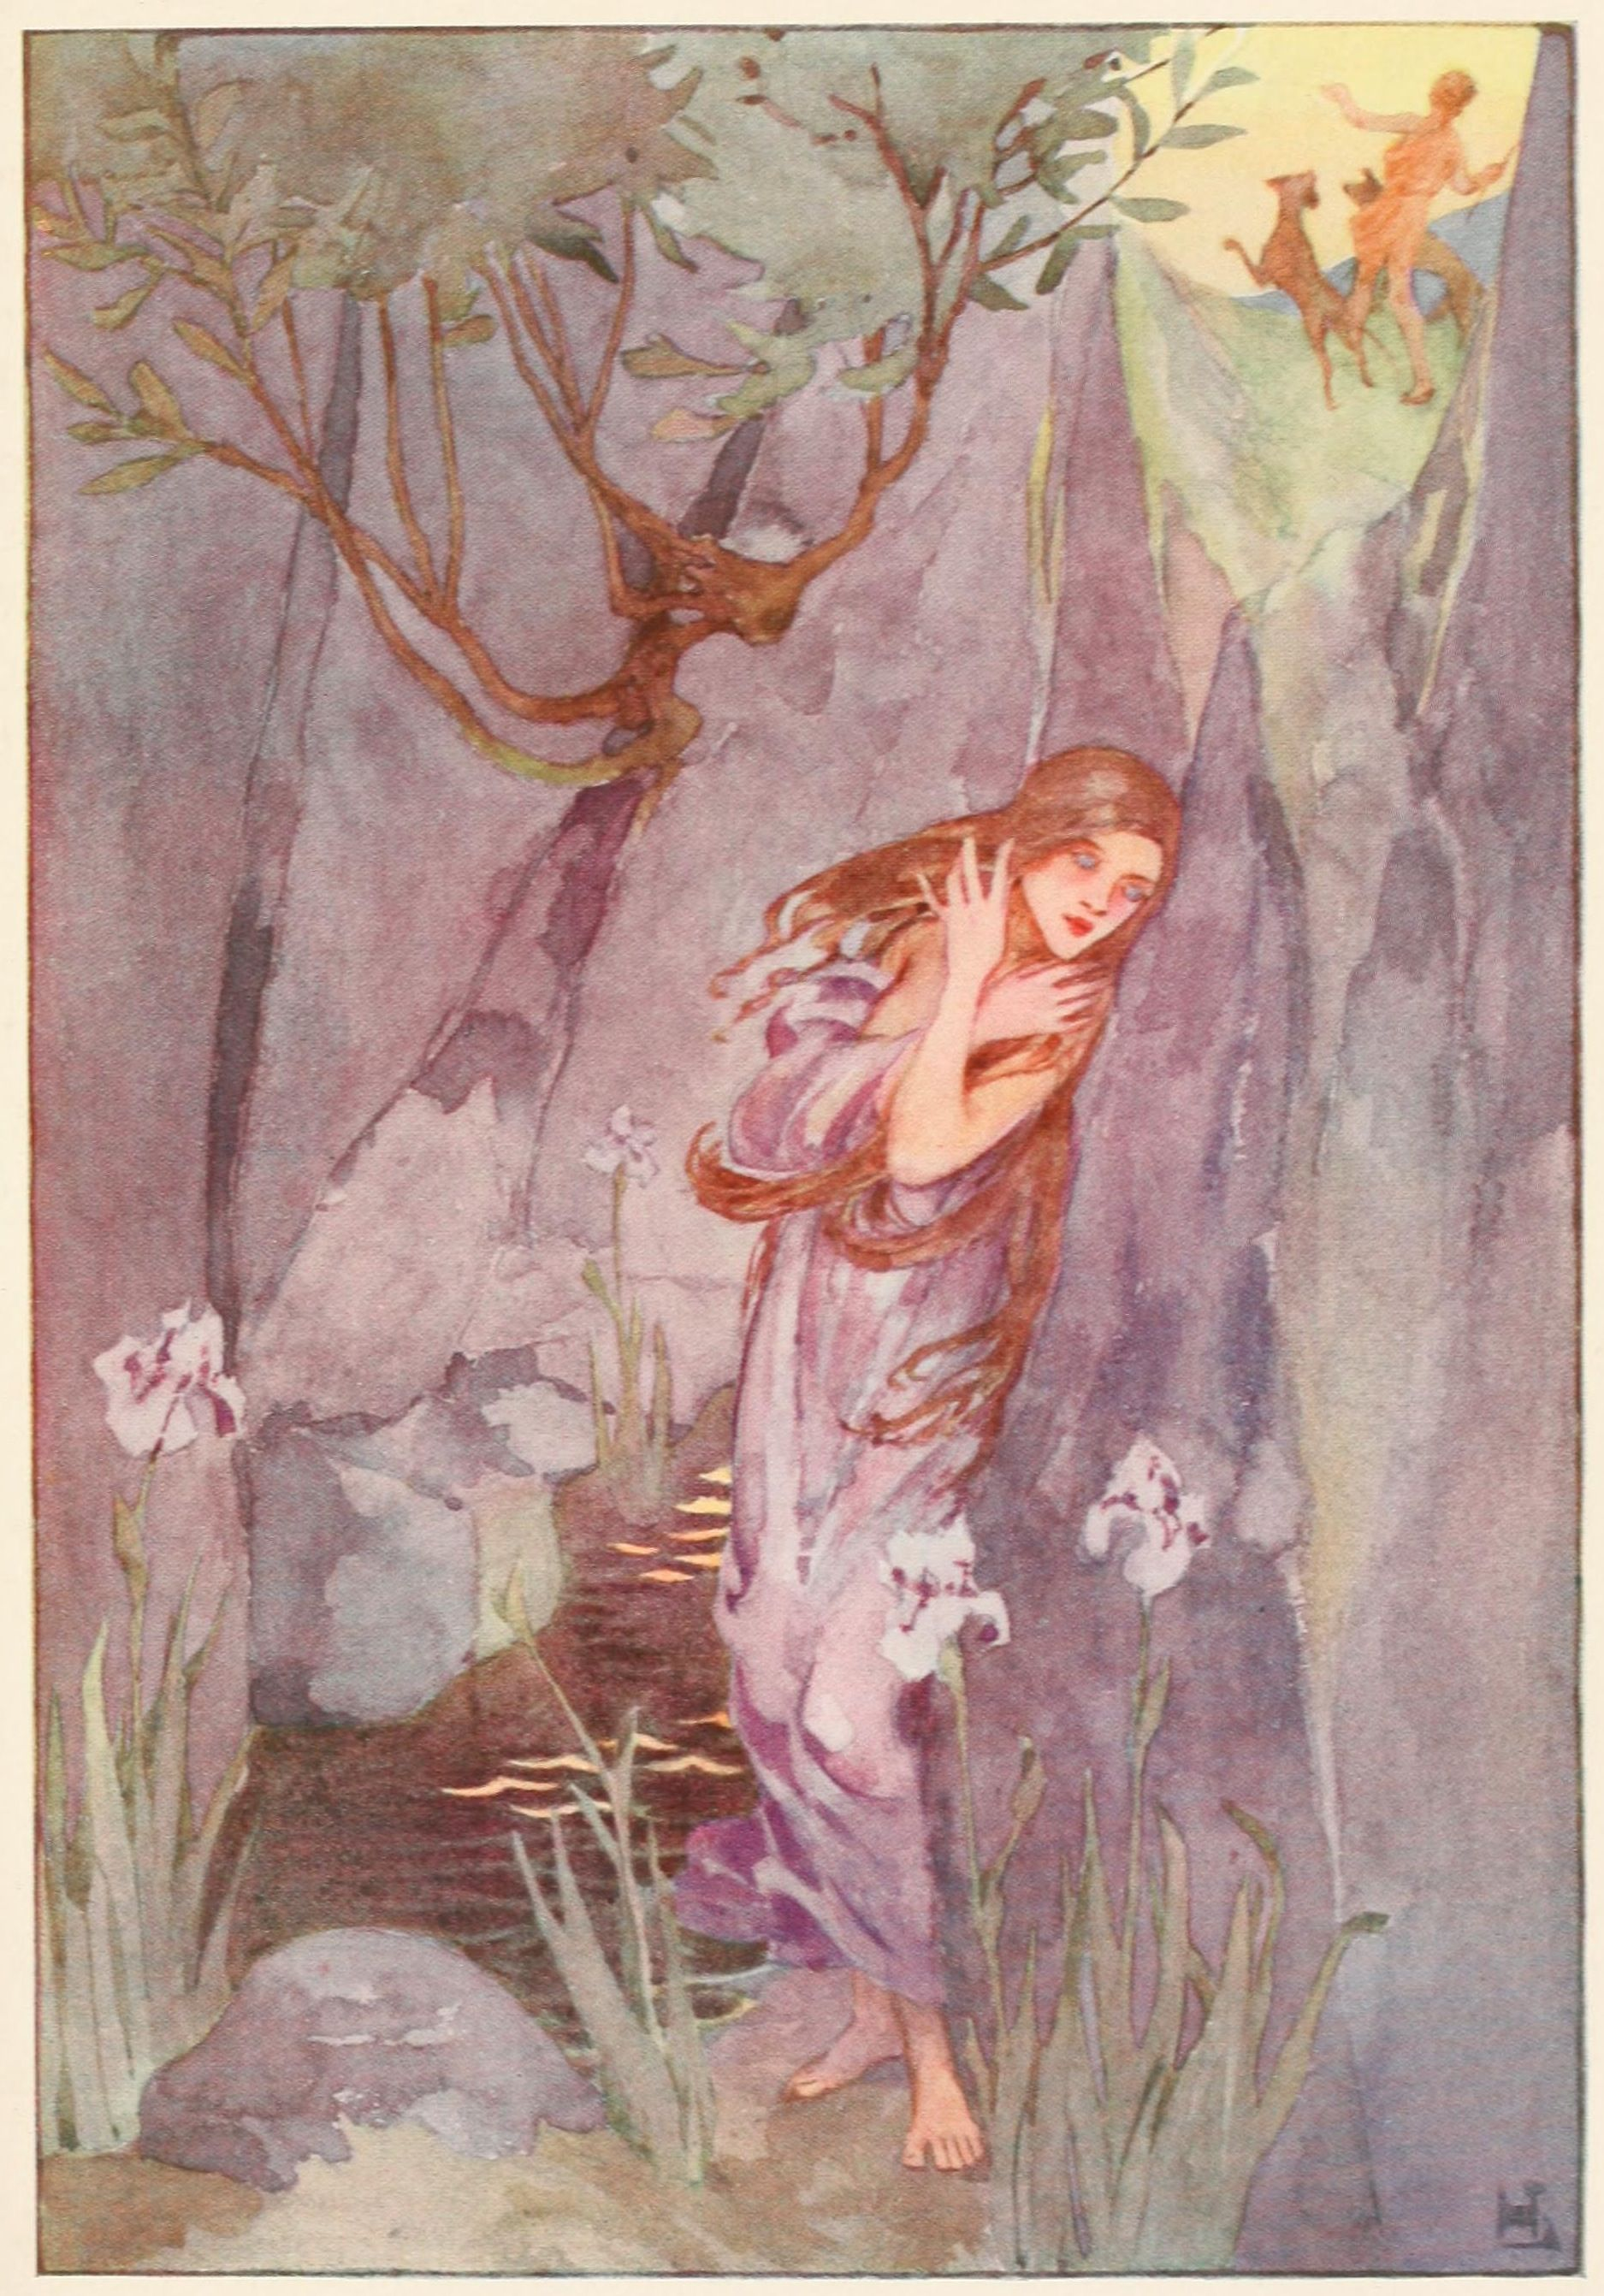 Echo And Narcissus For Kids 1915 Book of Myths - H...